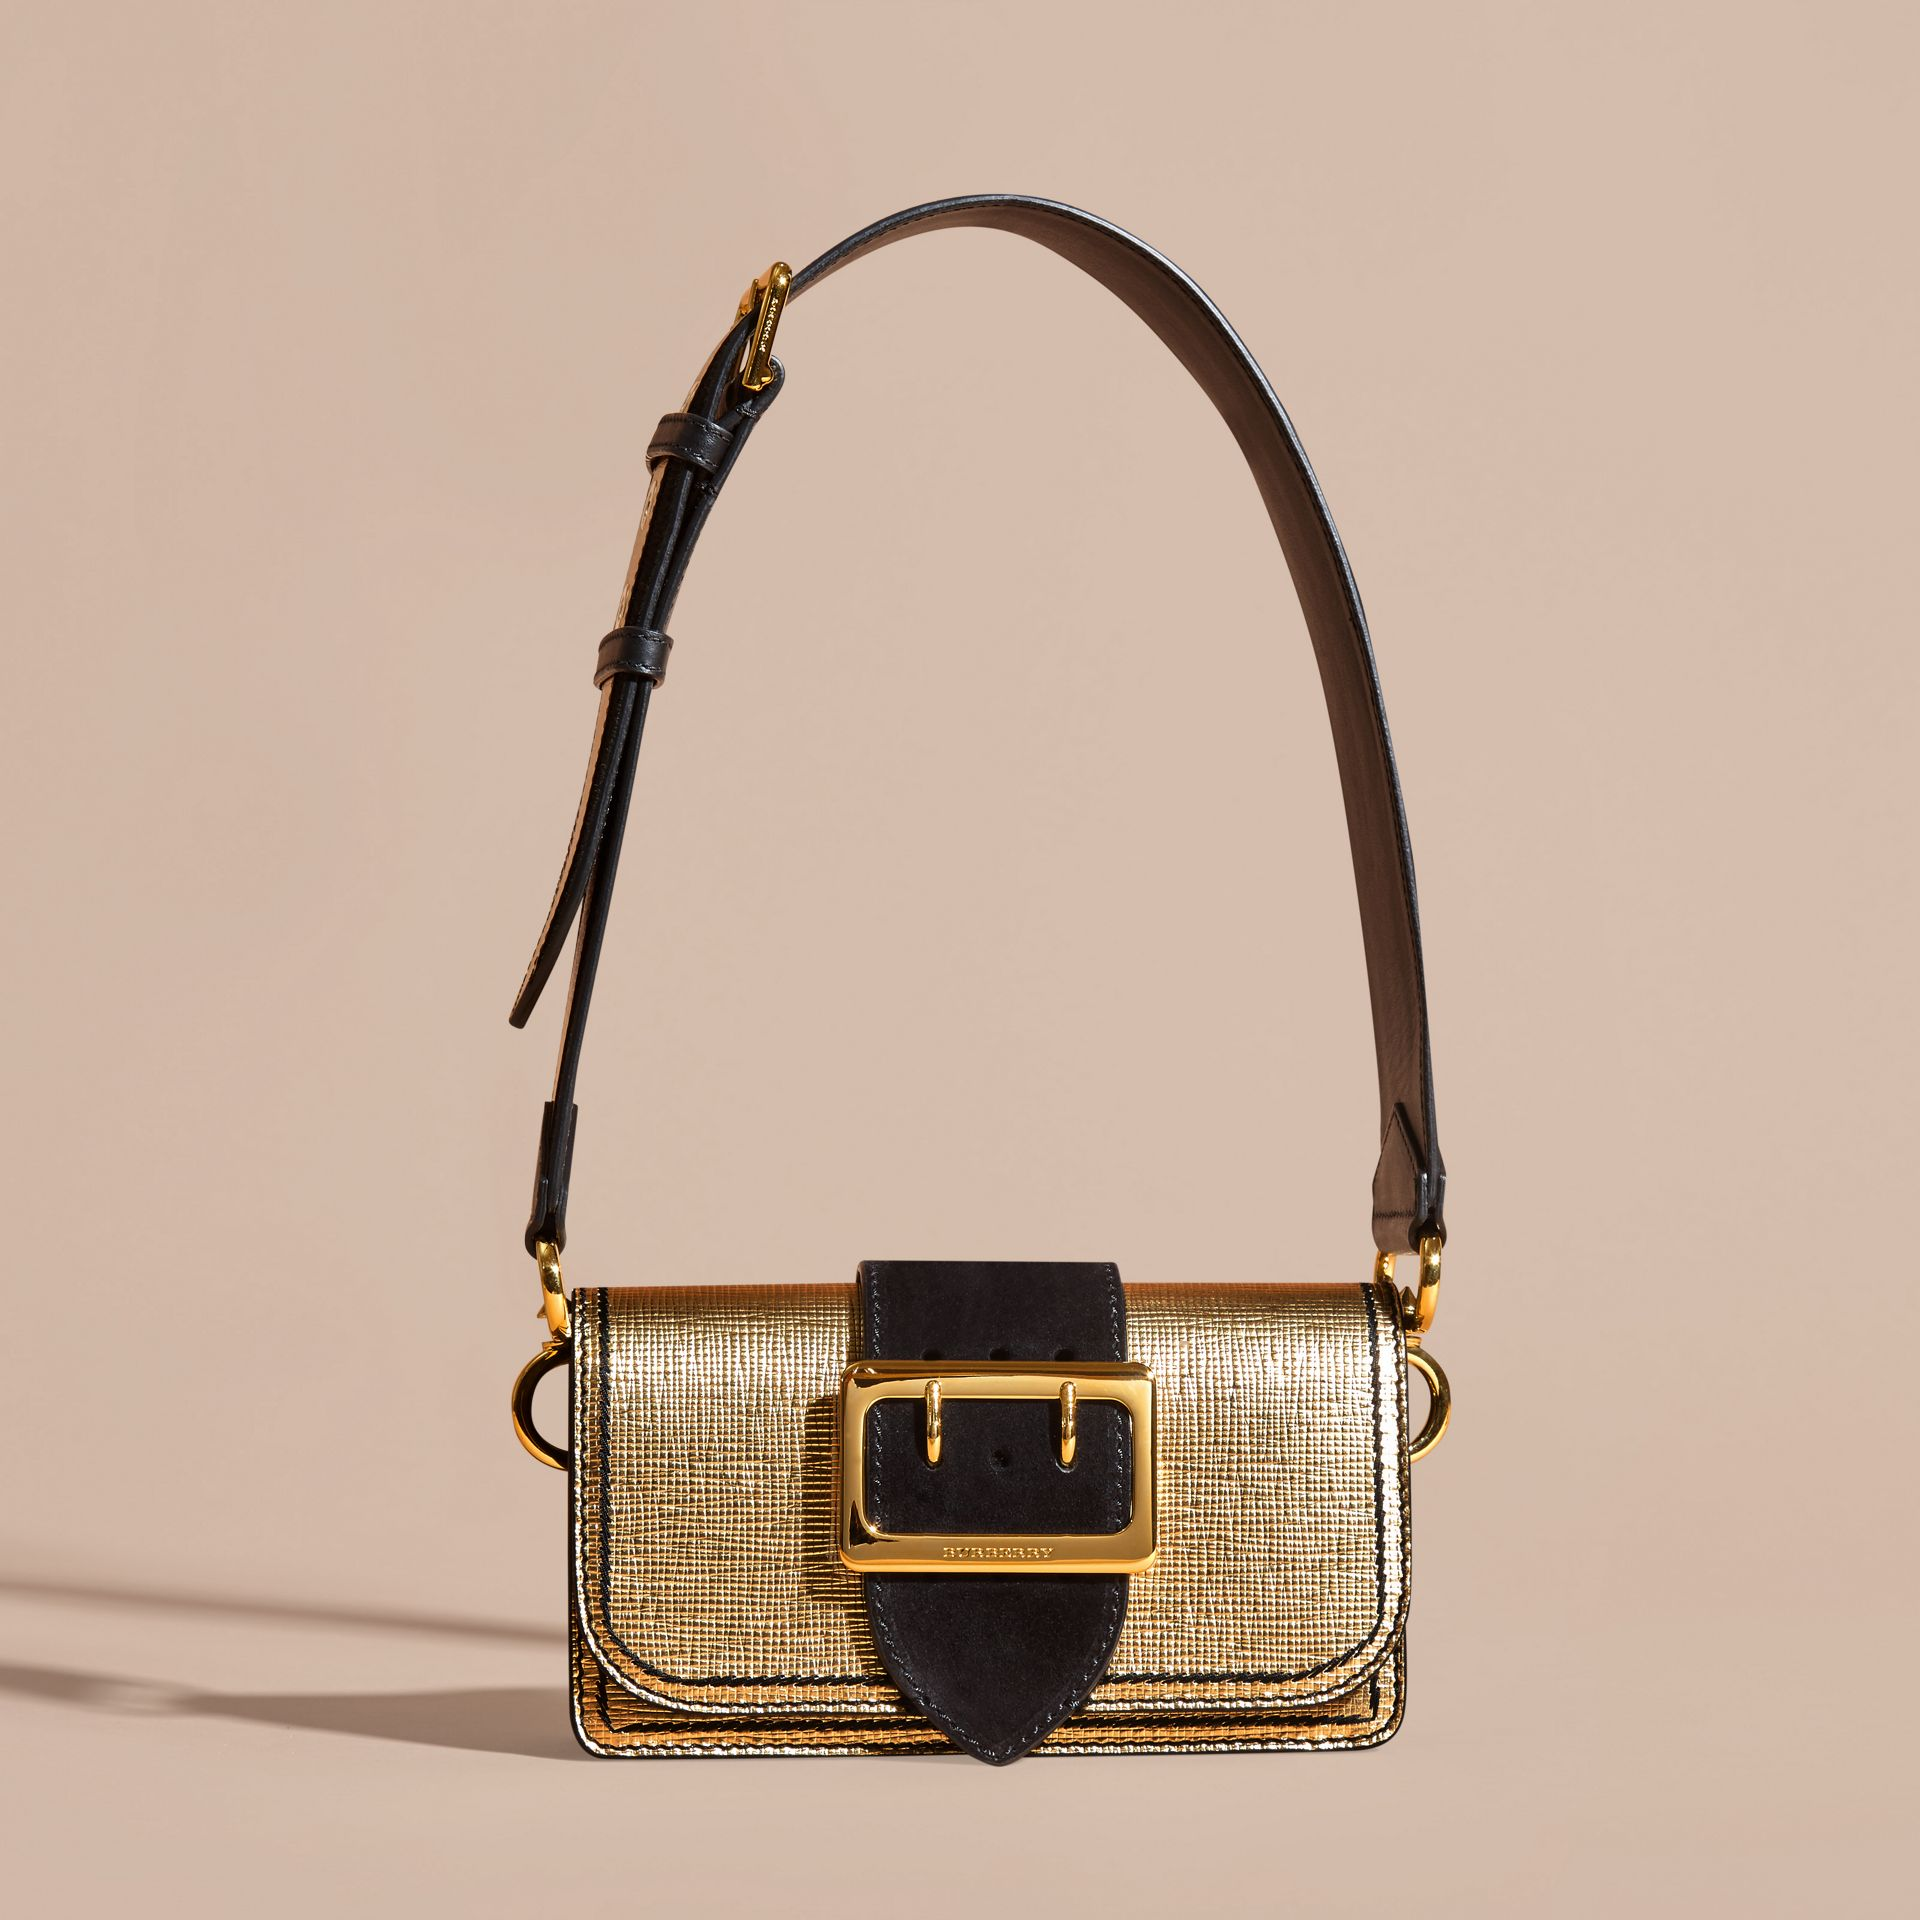 Gold/black The Small Buckle Bag in Metallic Leather and Suede - gallery image 7